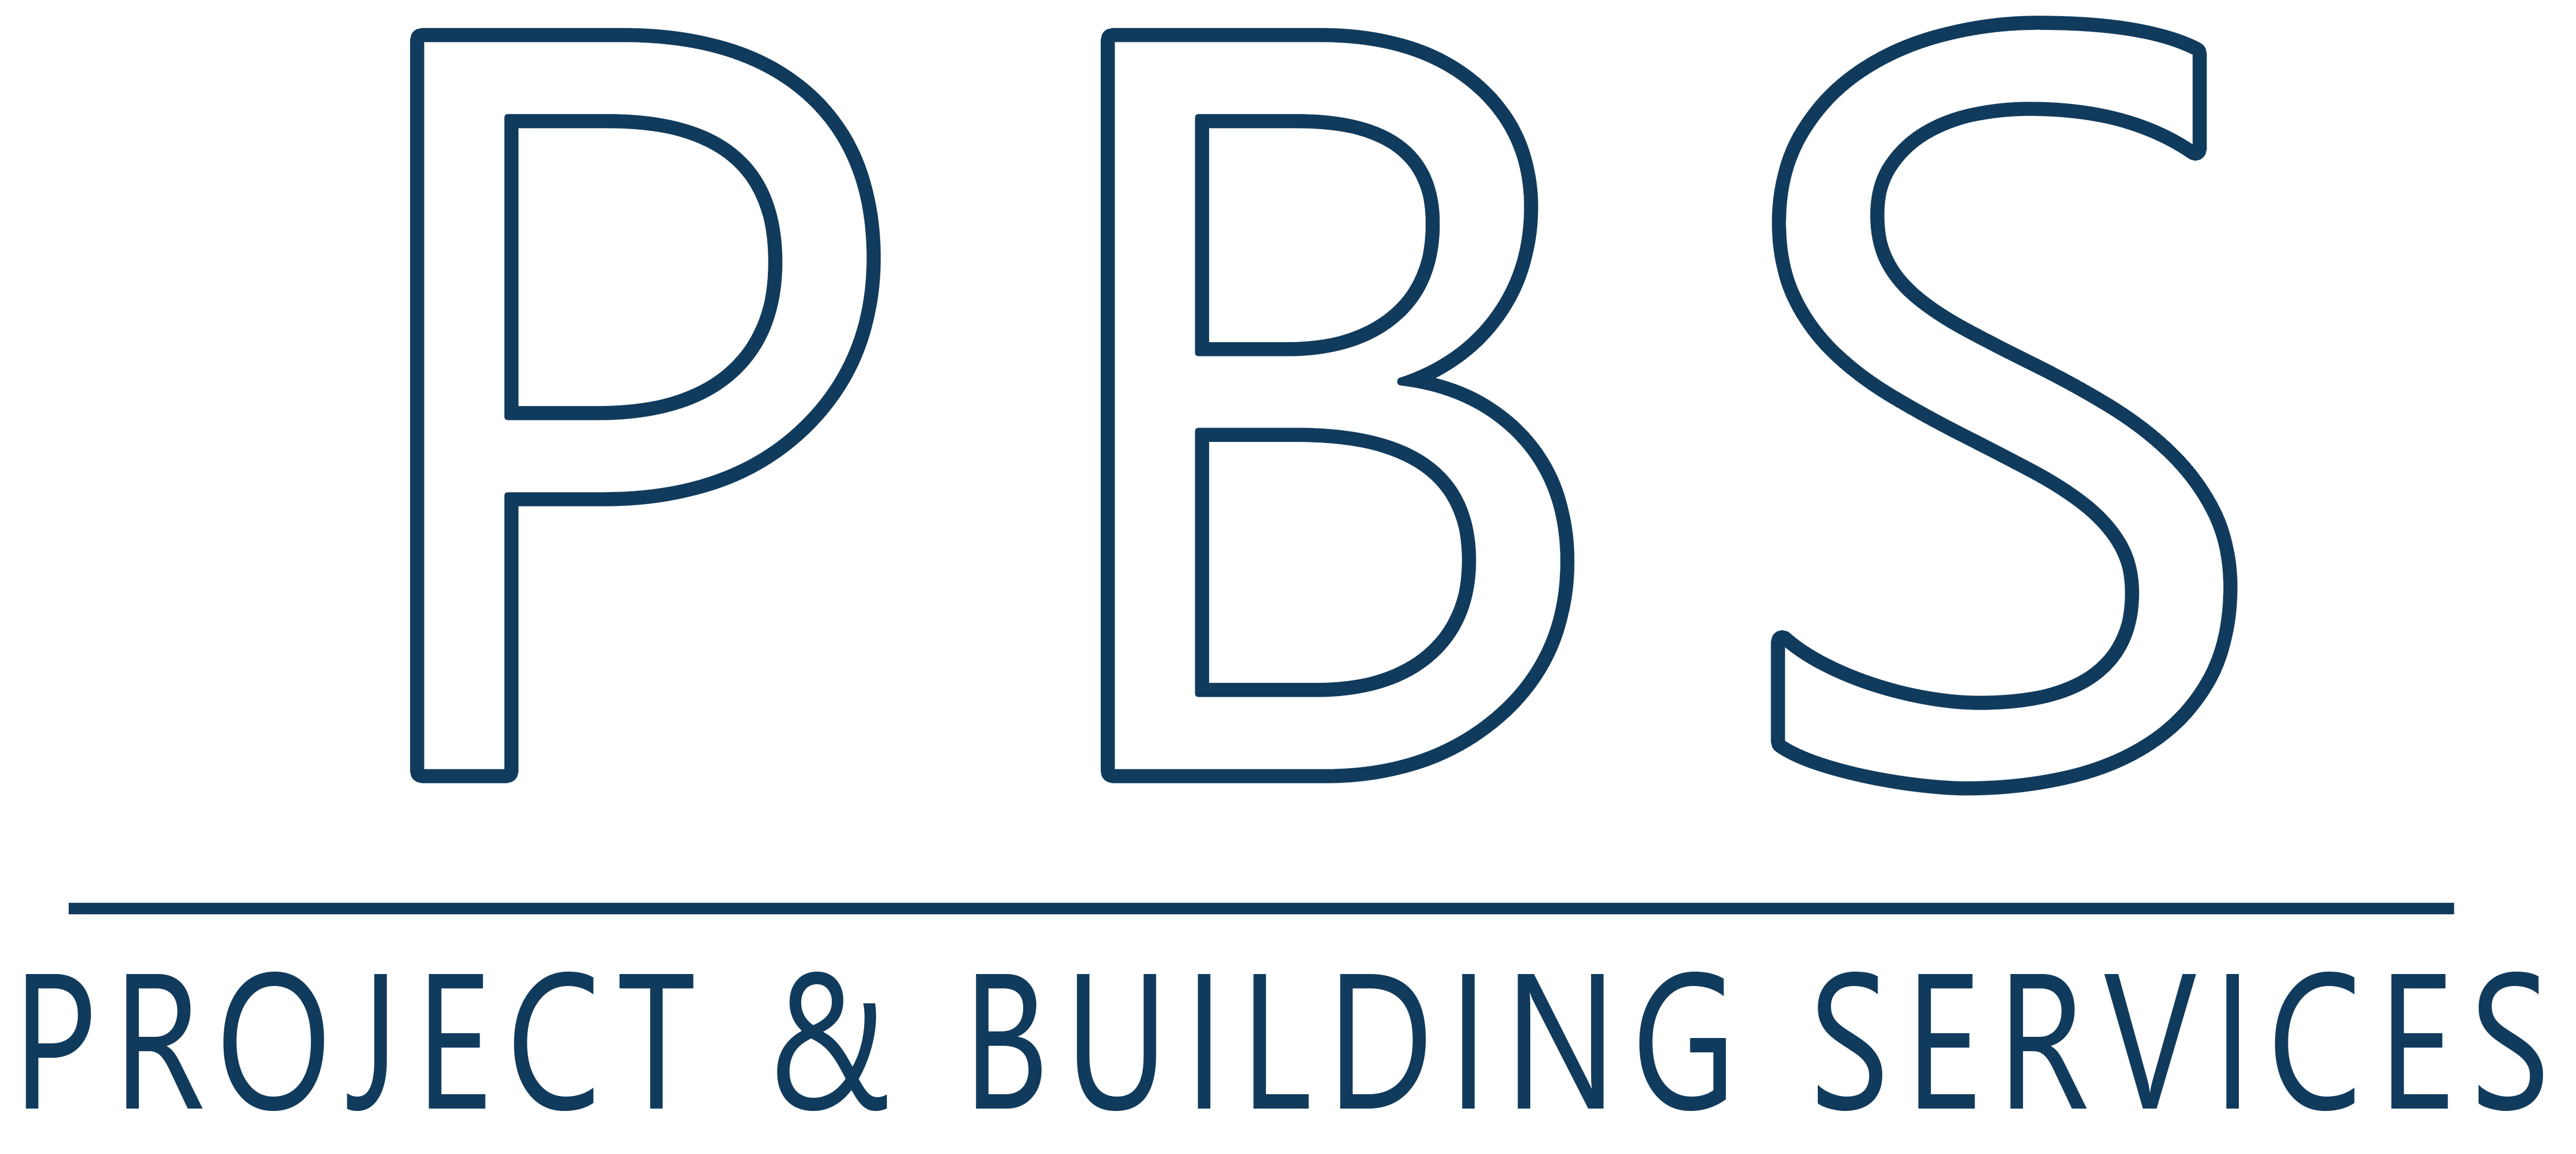 PBS | Project & Building Services